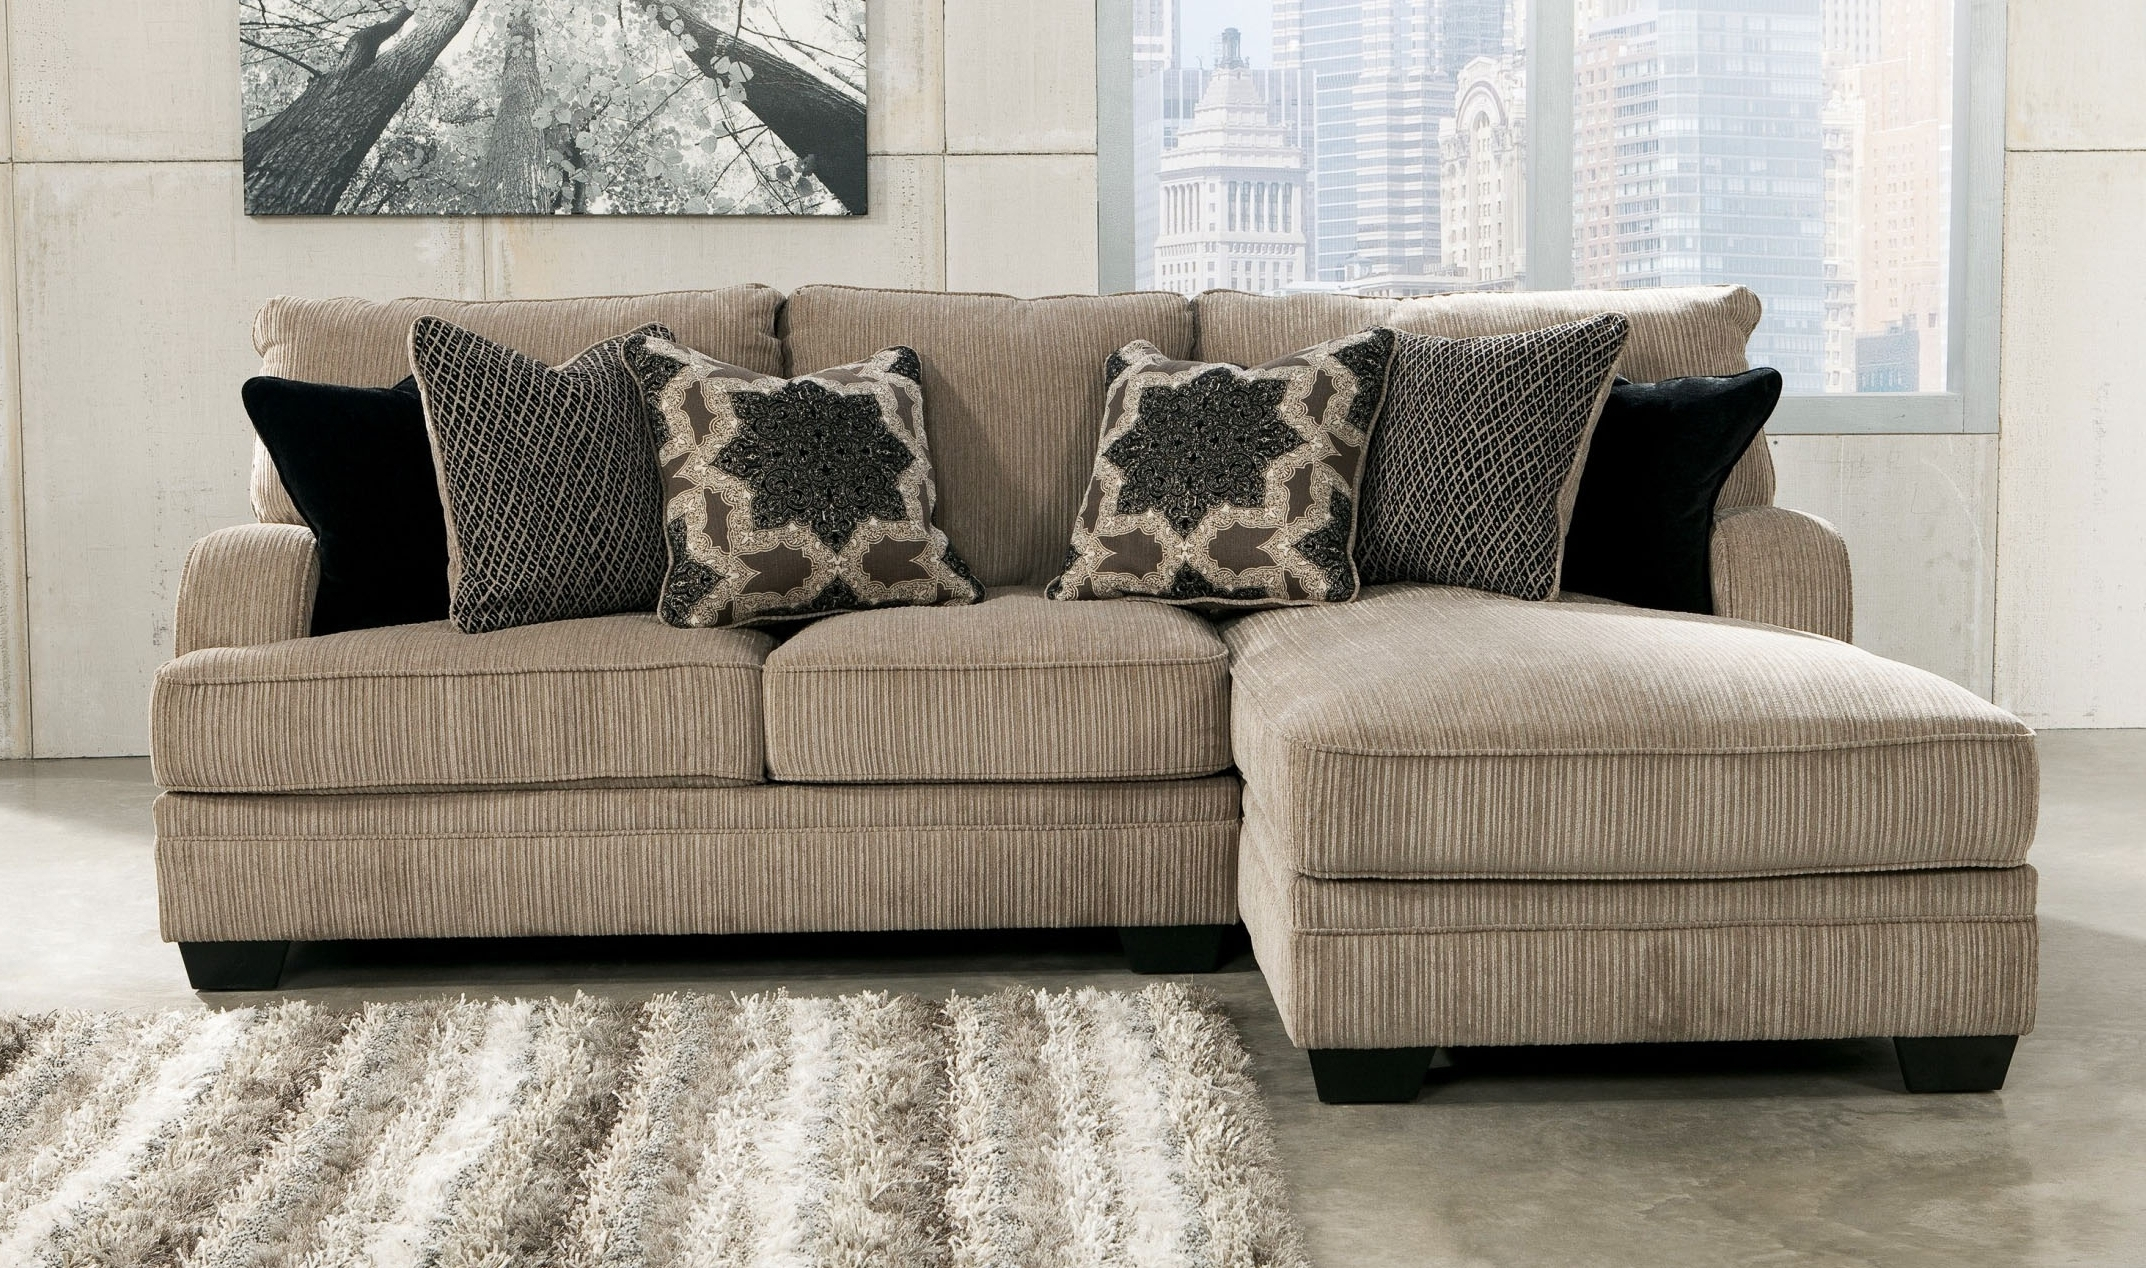 Inexpensive Sectional Sofas For Small Spaces Inside Well Known Stylish Inexpensive Sectional Sofas For Small Spaces (Gallery 5 of 20)